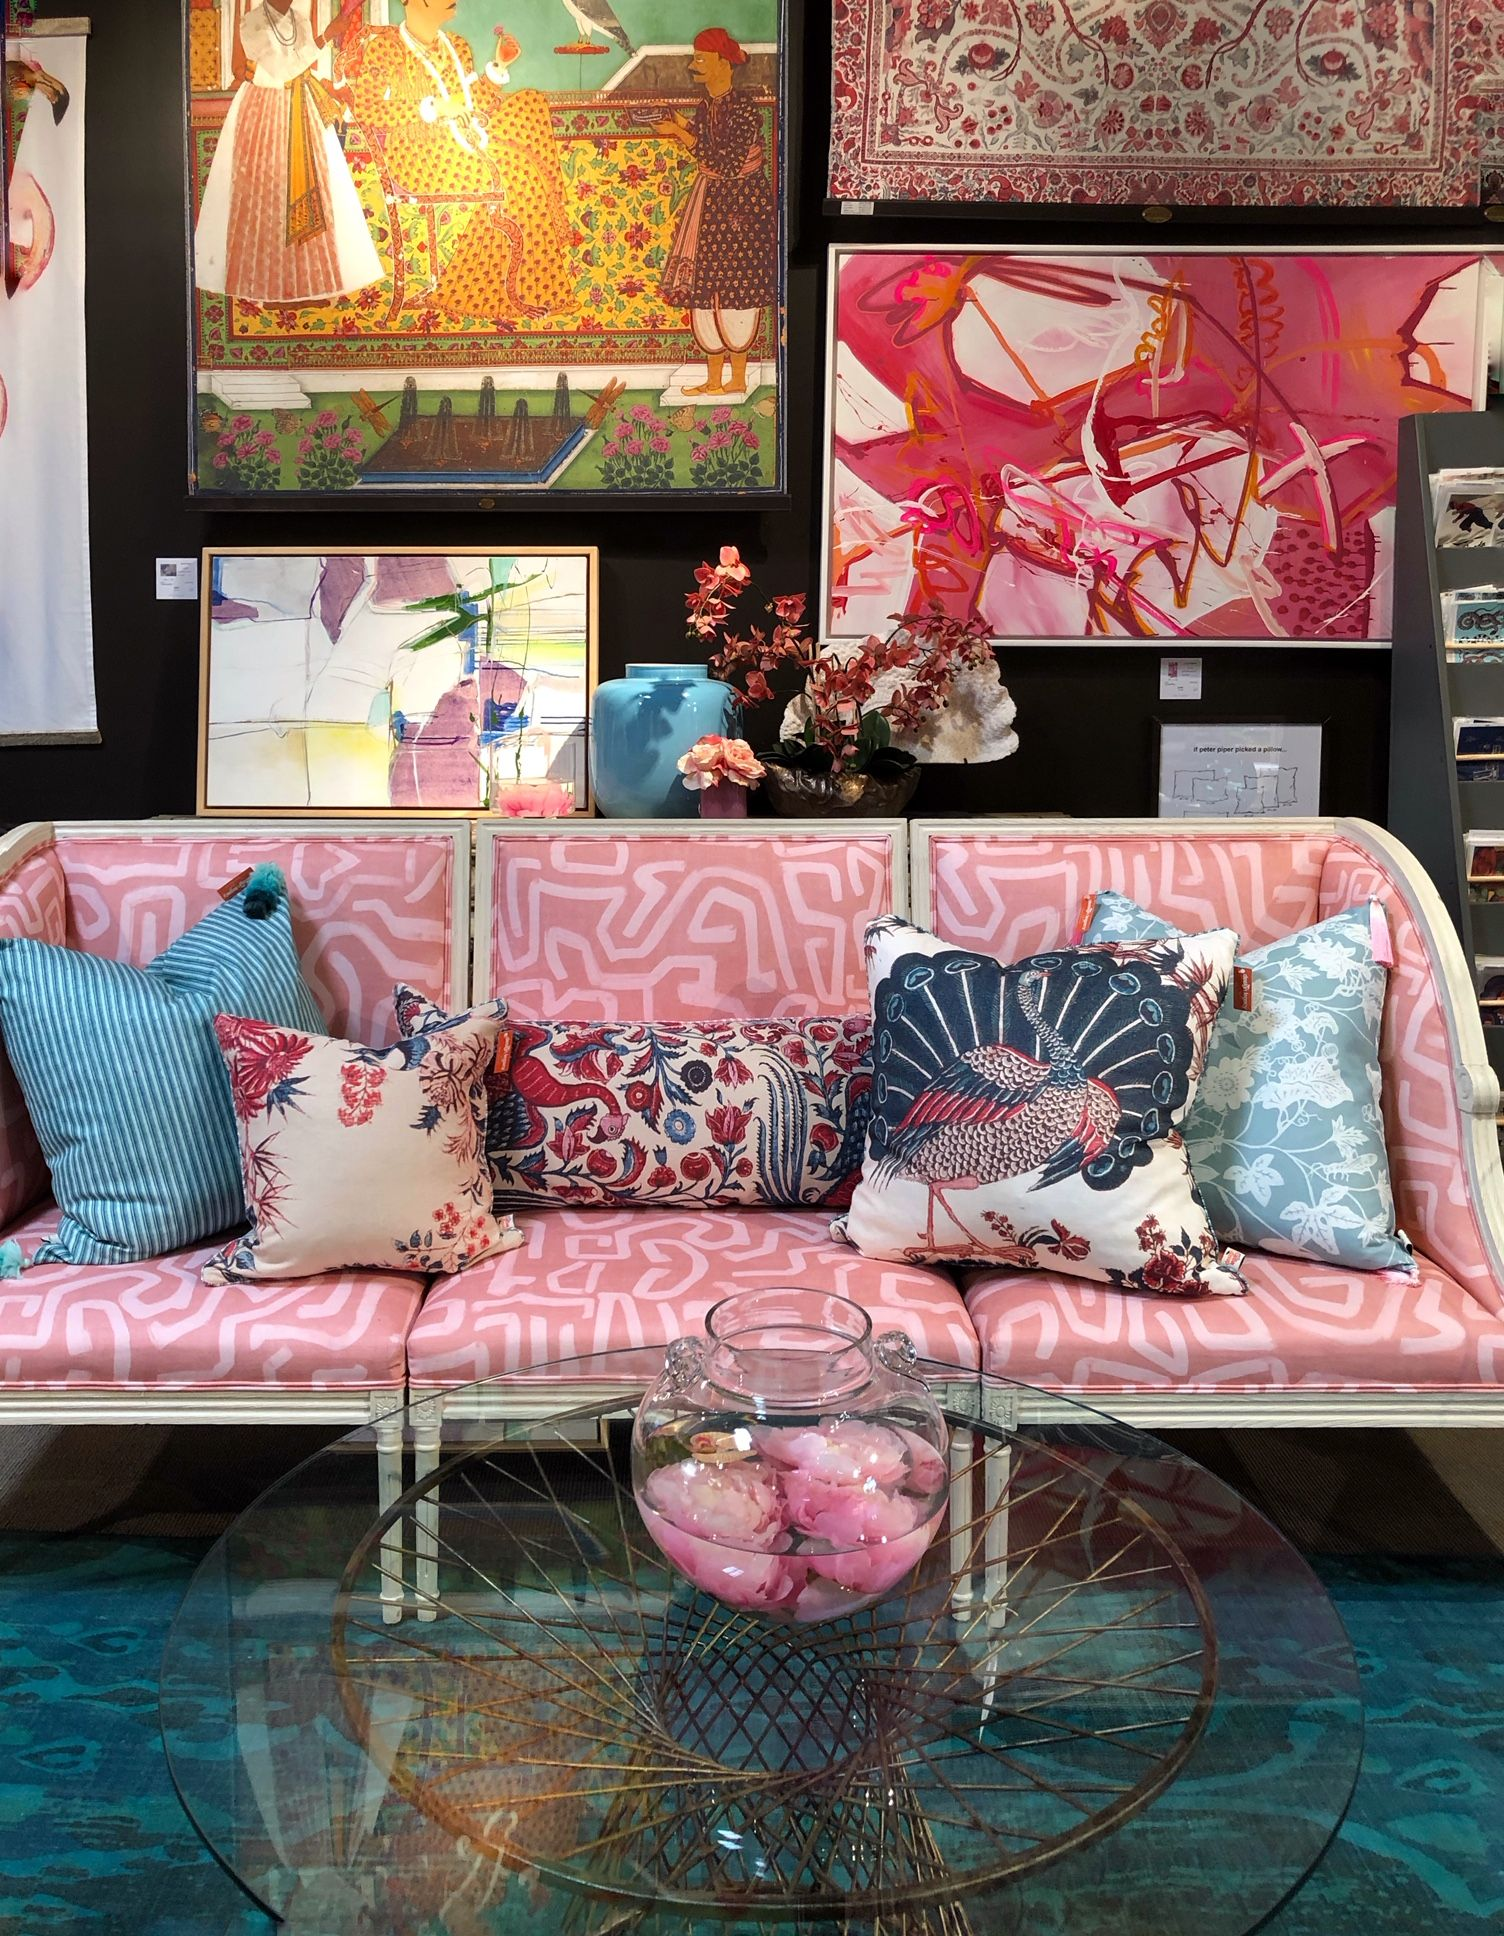 Color And Design Trends From Spring 2019 High Point Market Part One Interior Design High Point Furniture Market Furniture Design